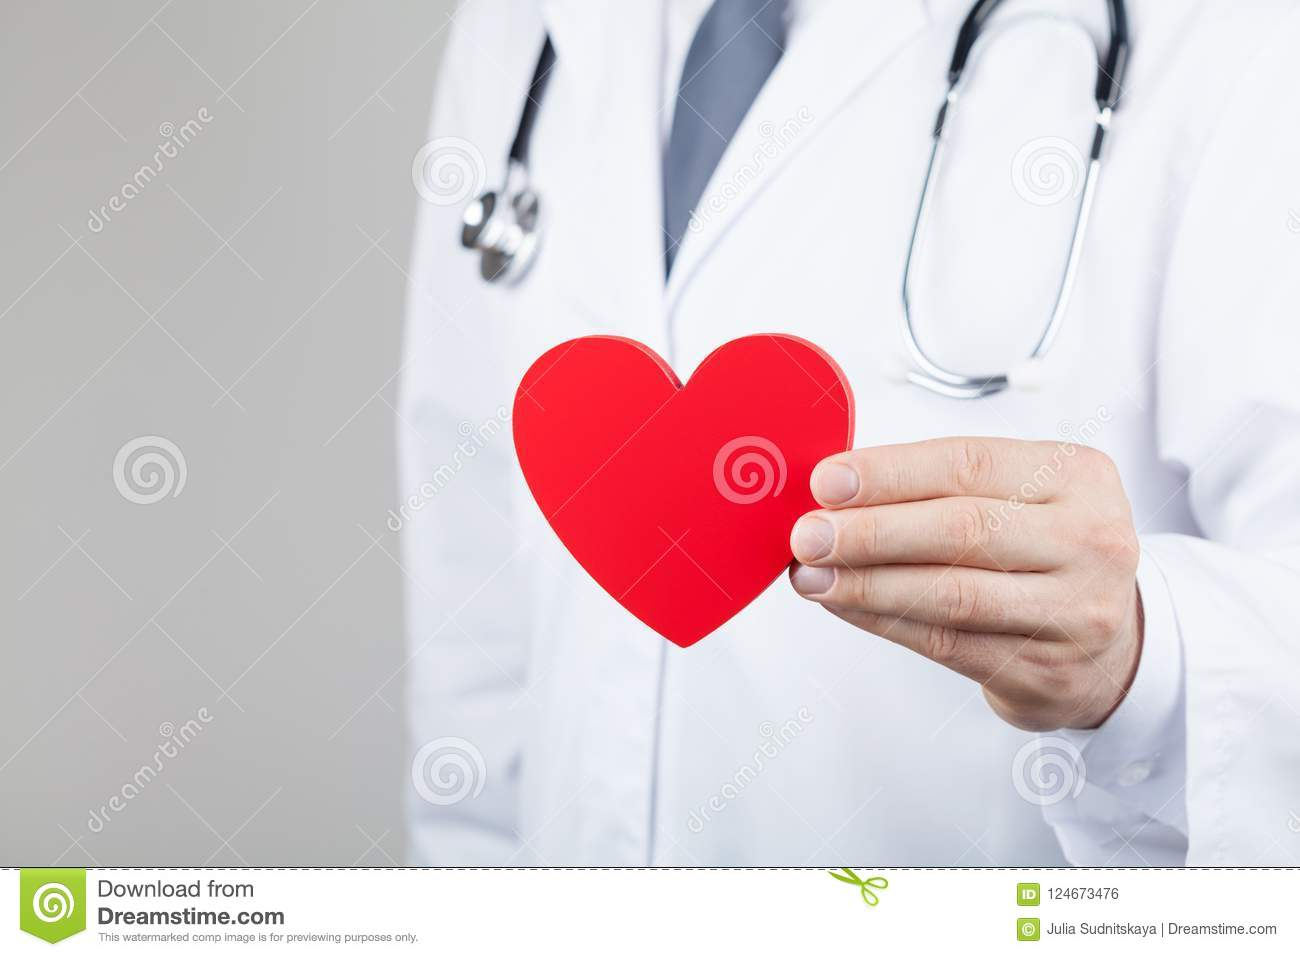 Doctor cardiologist holding a heart in his hands. Cardiology and heart disease concept.